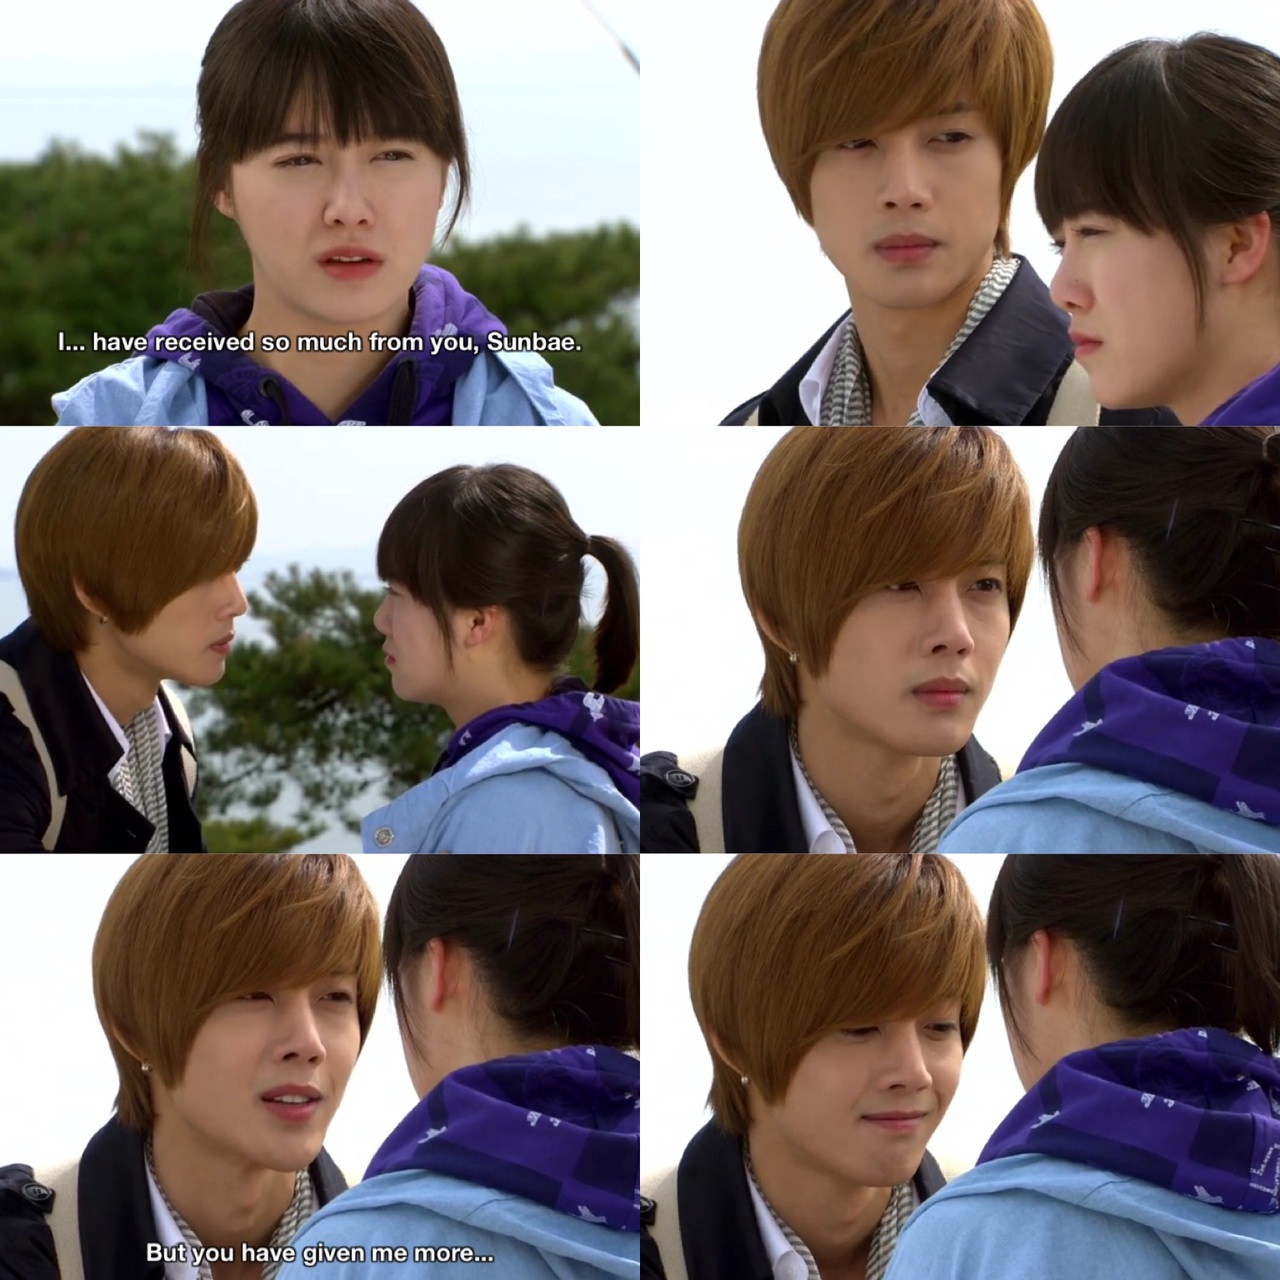 Imagenes De Jandi 45 images about geum jan di and ji hoo on we heart it   see